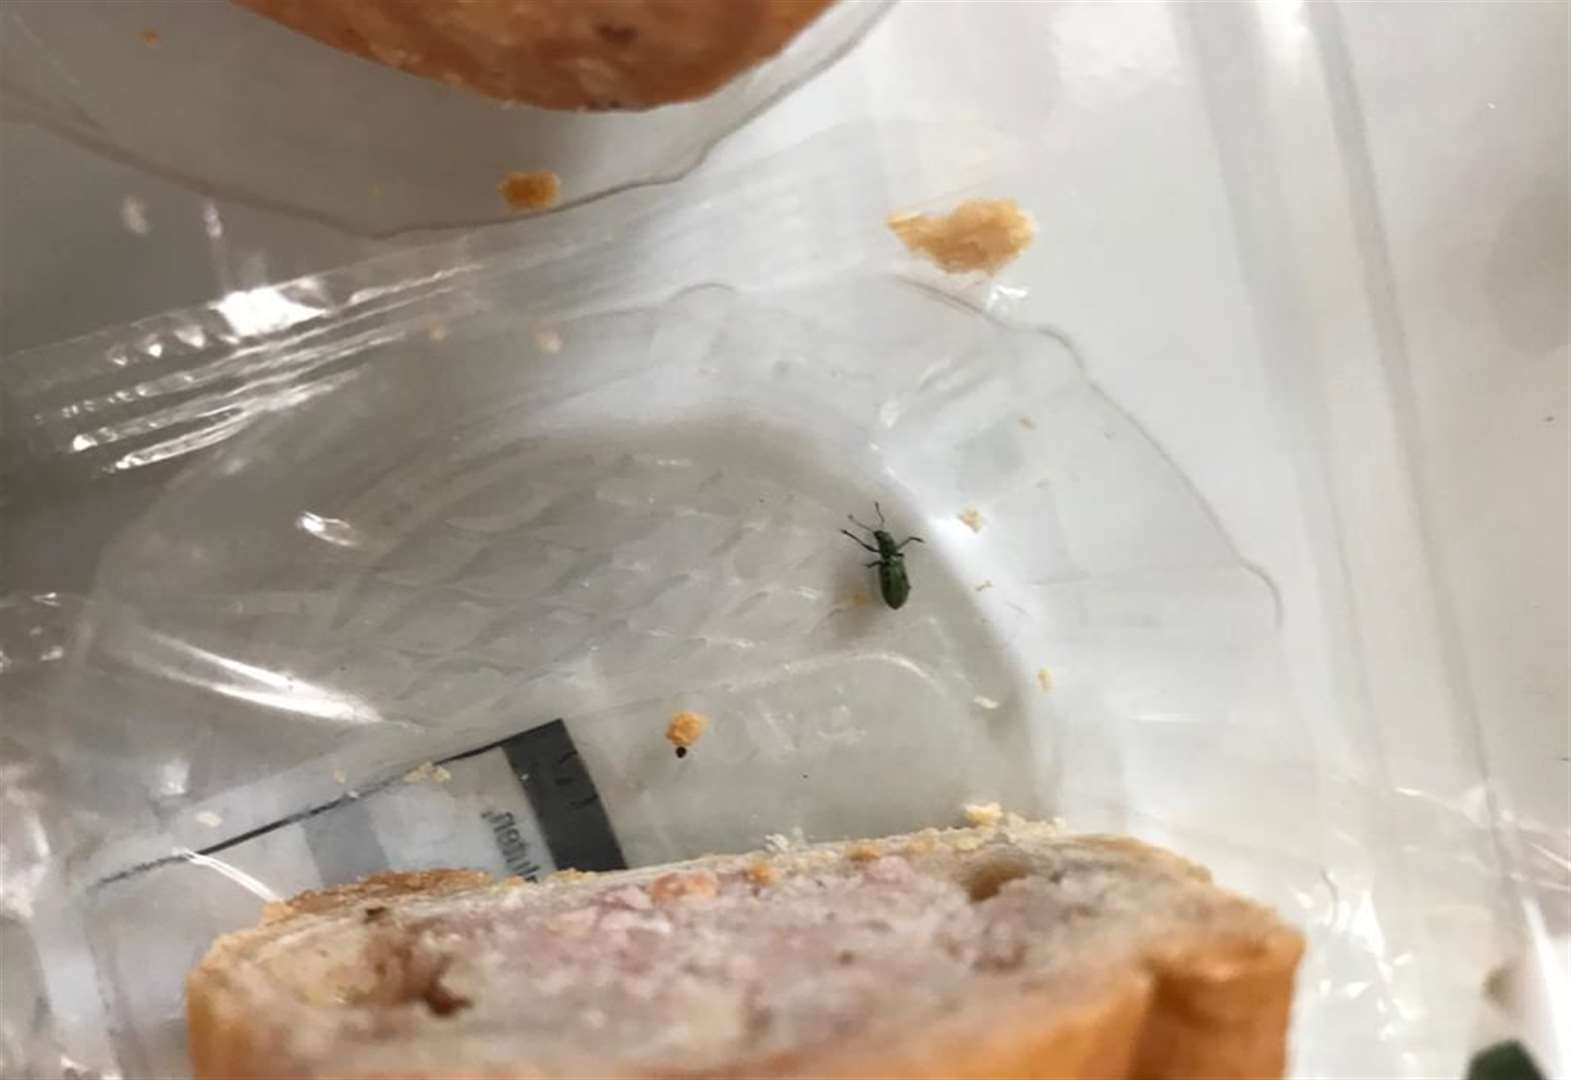 Woman finds beetle in pork pie from supermarket